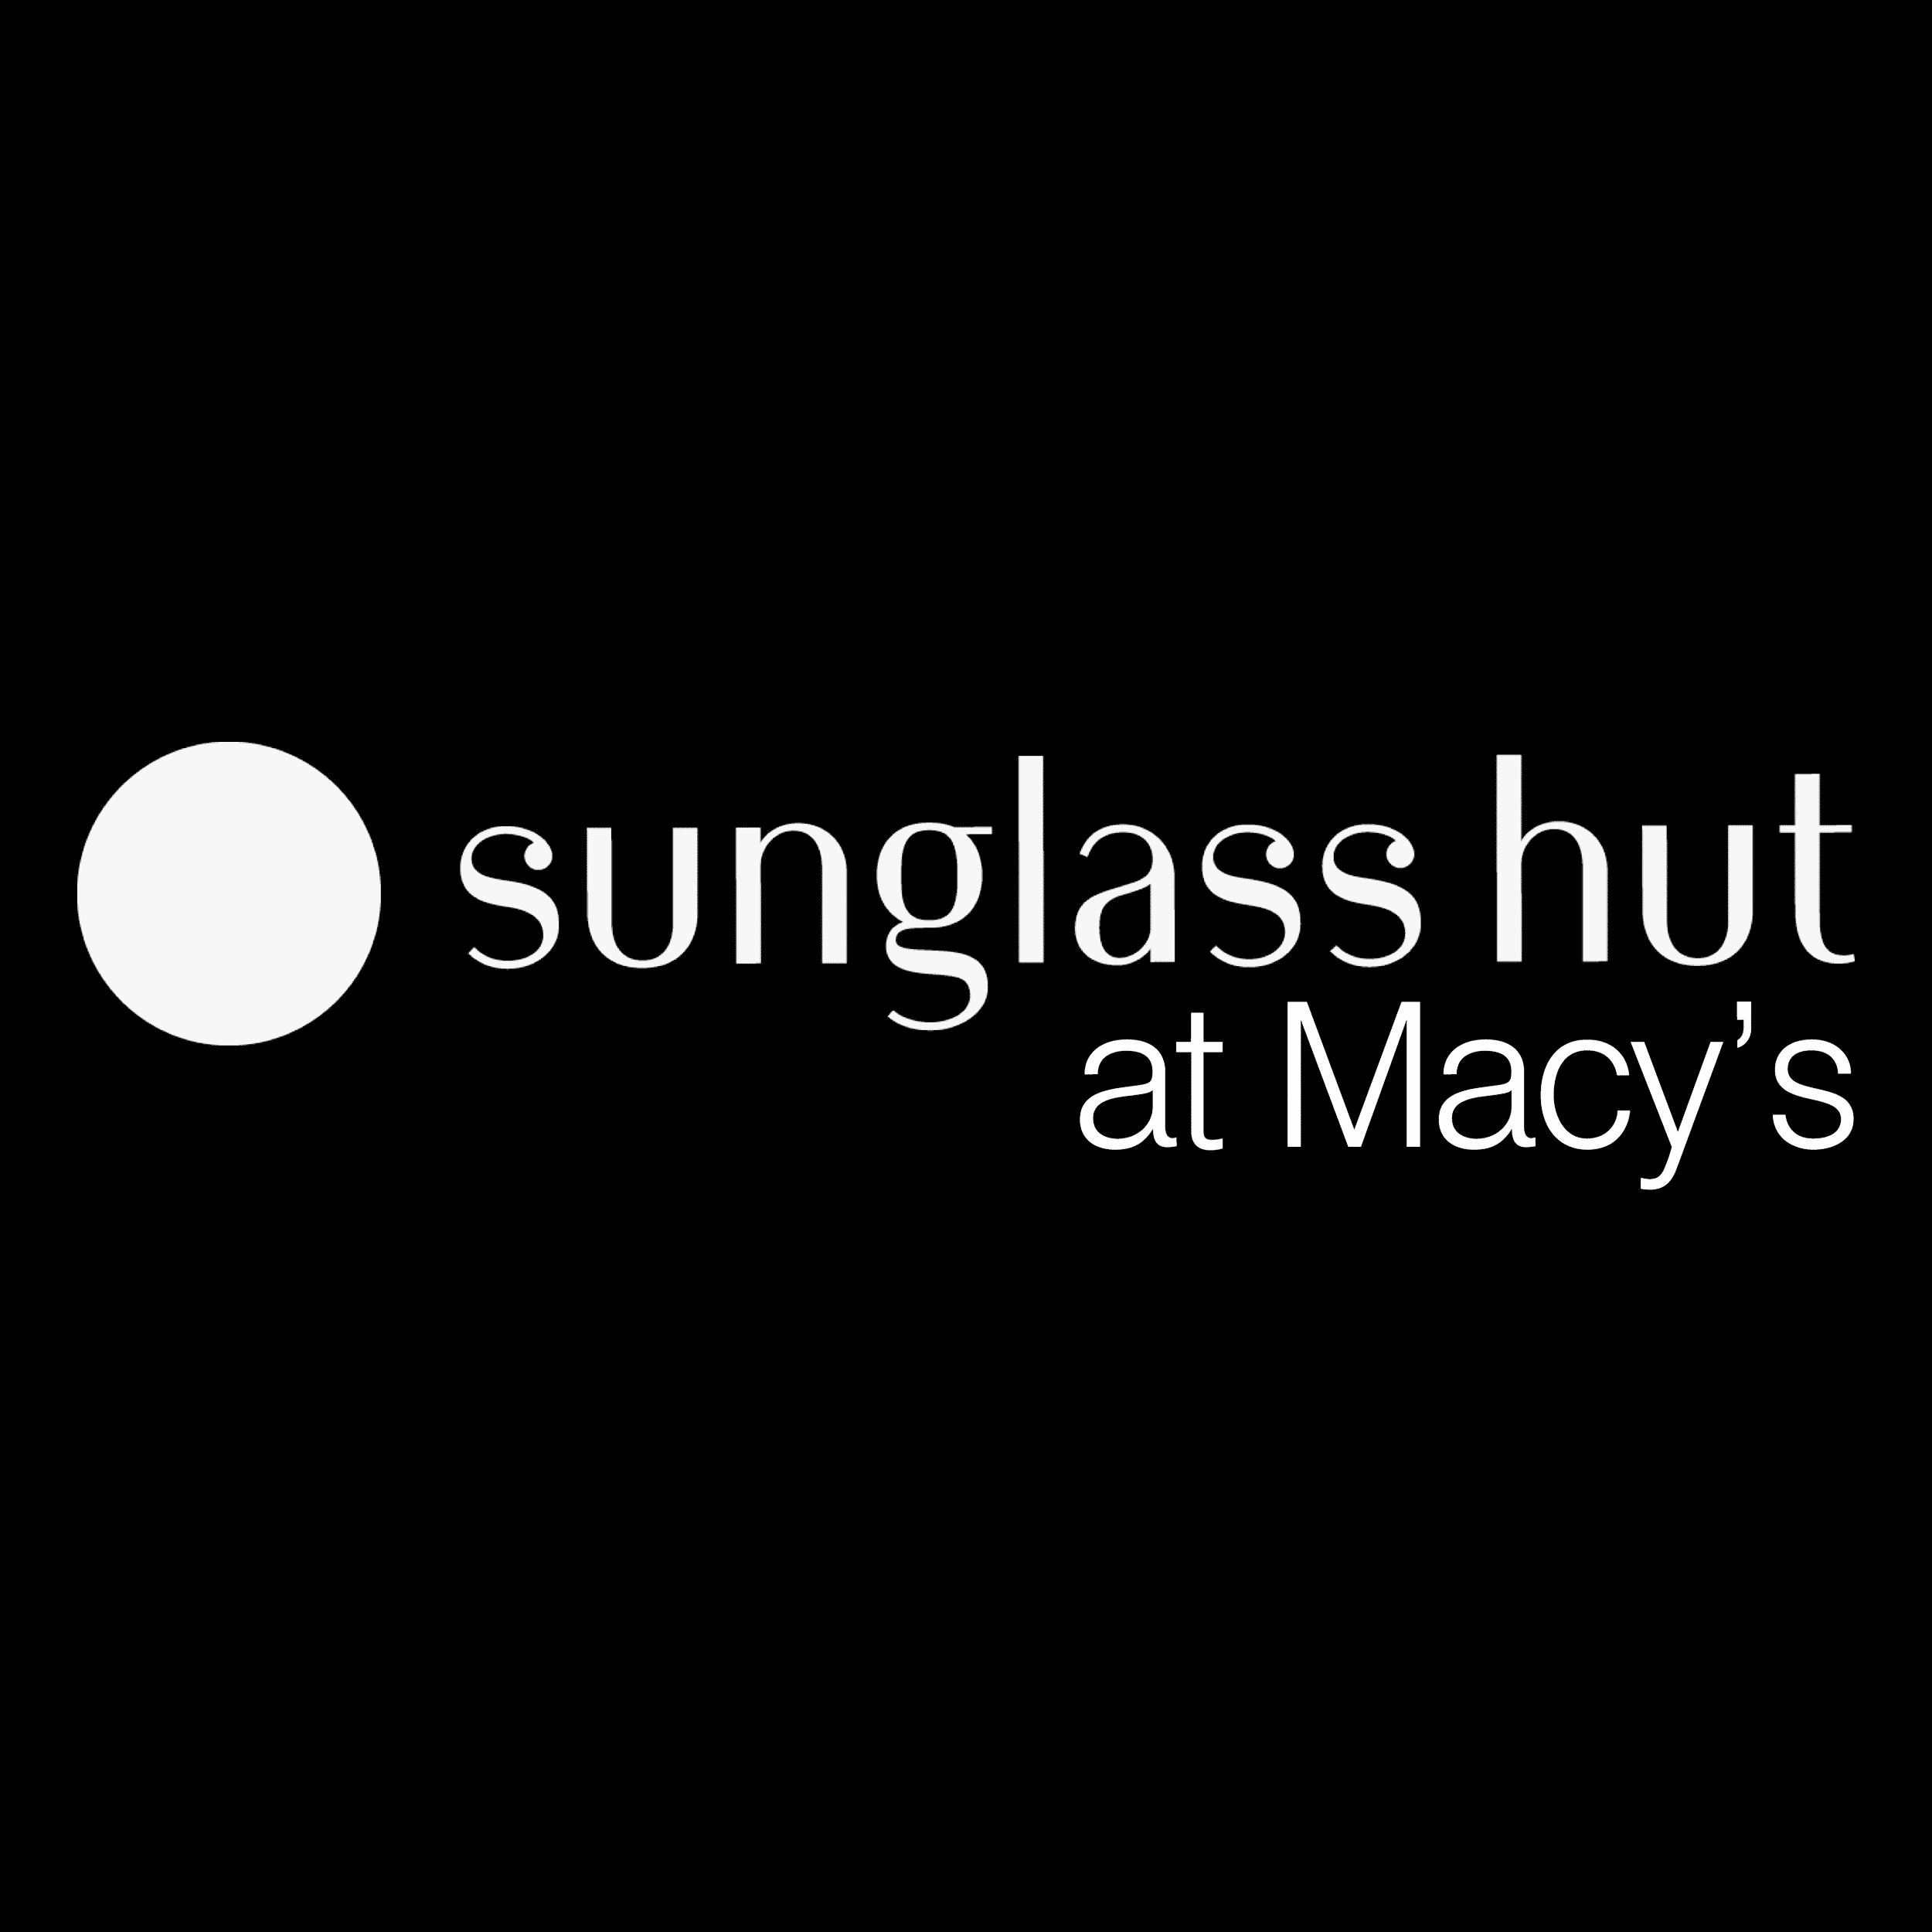 Sunglass Hut at Macy's